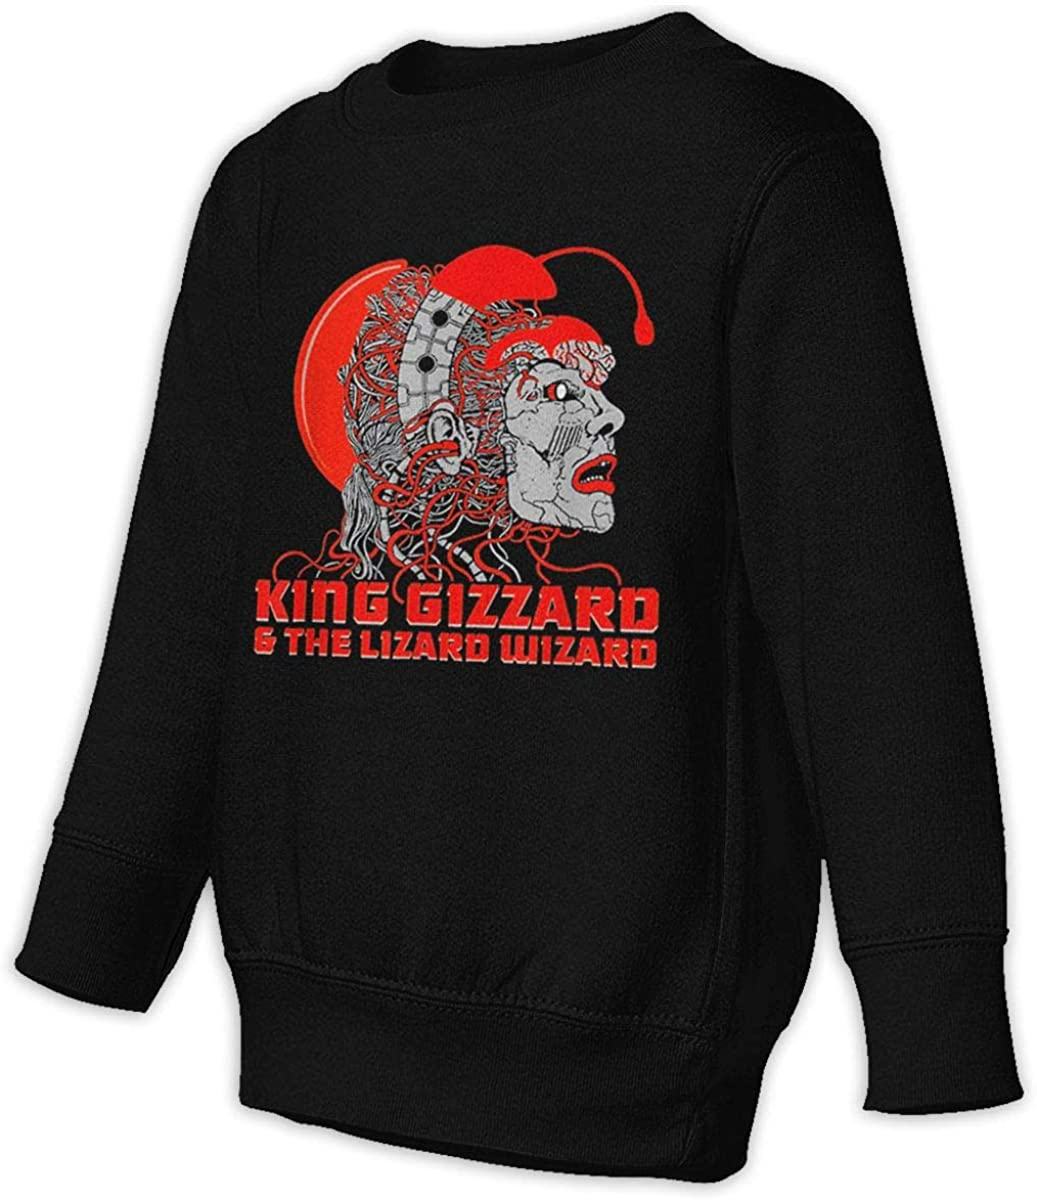 King Gizzard and Lizard Wizard Juvenile and Toddler Sweatshirt Handsome Fashion